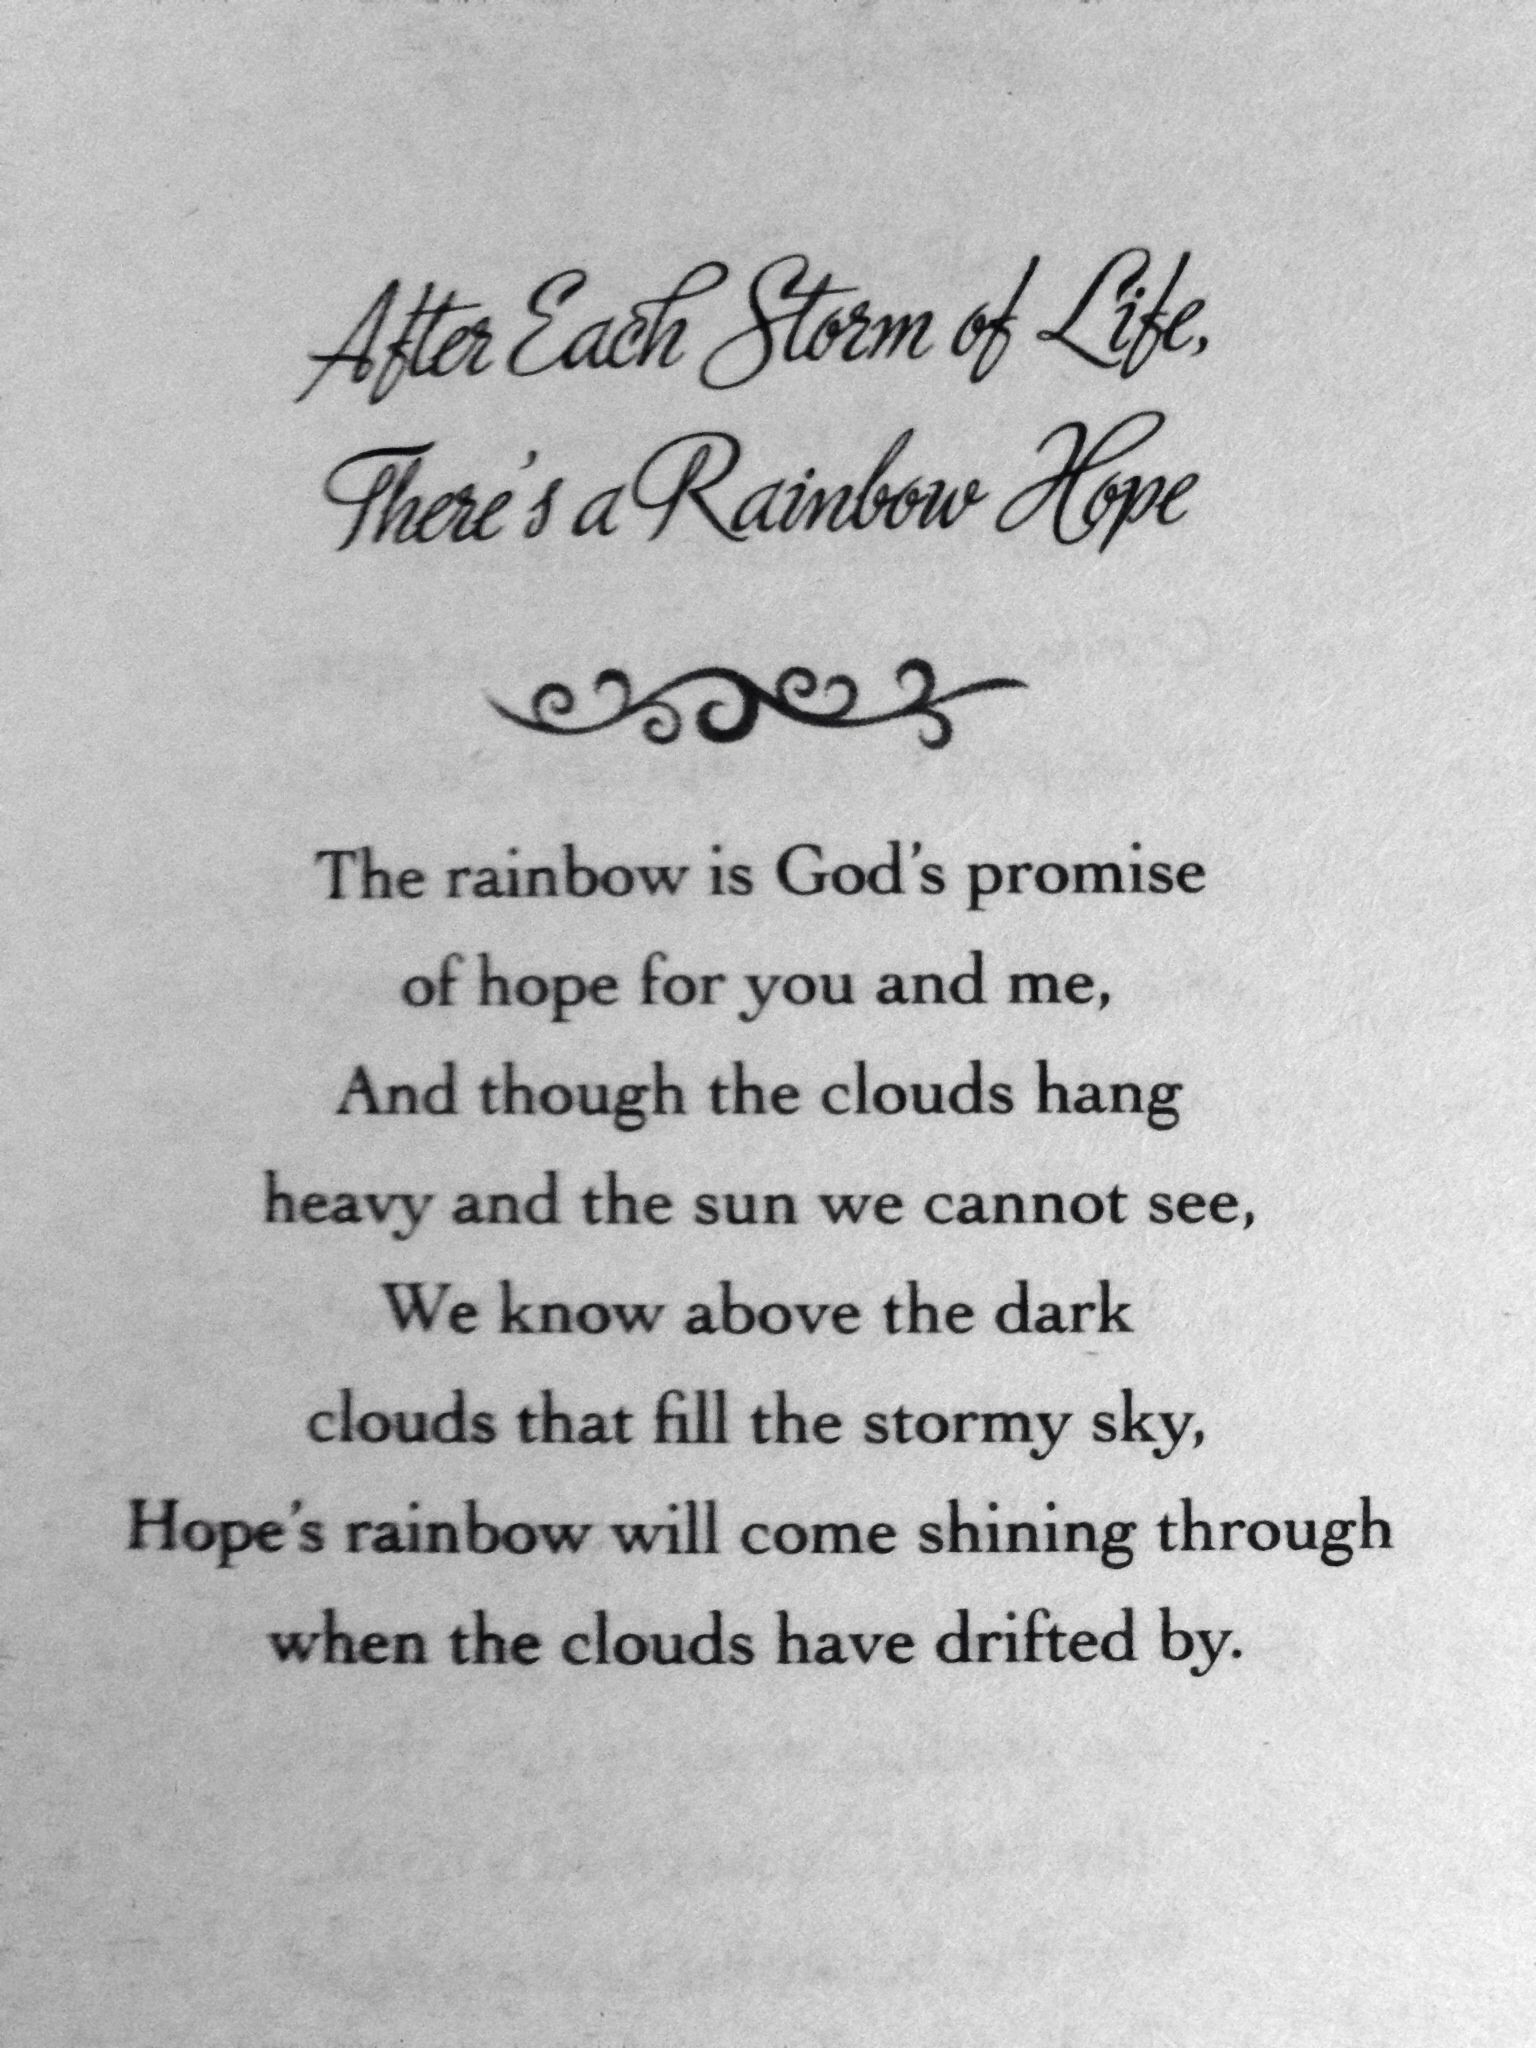 After Each Storm of Life, There's a Rainbow Hope by Helen